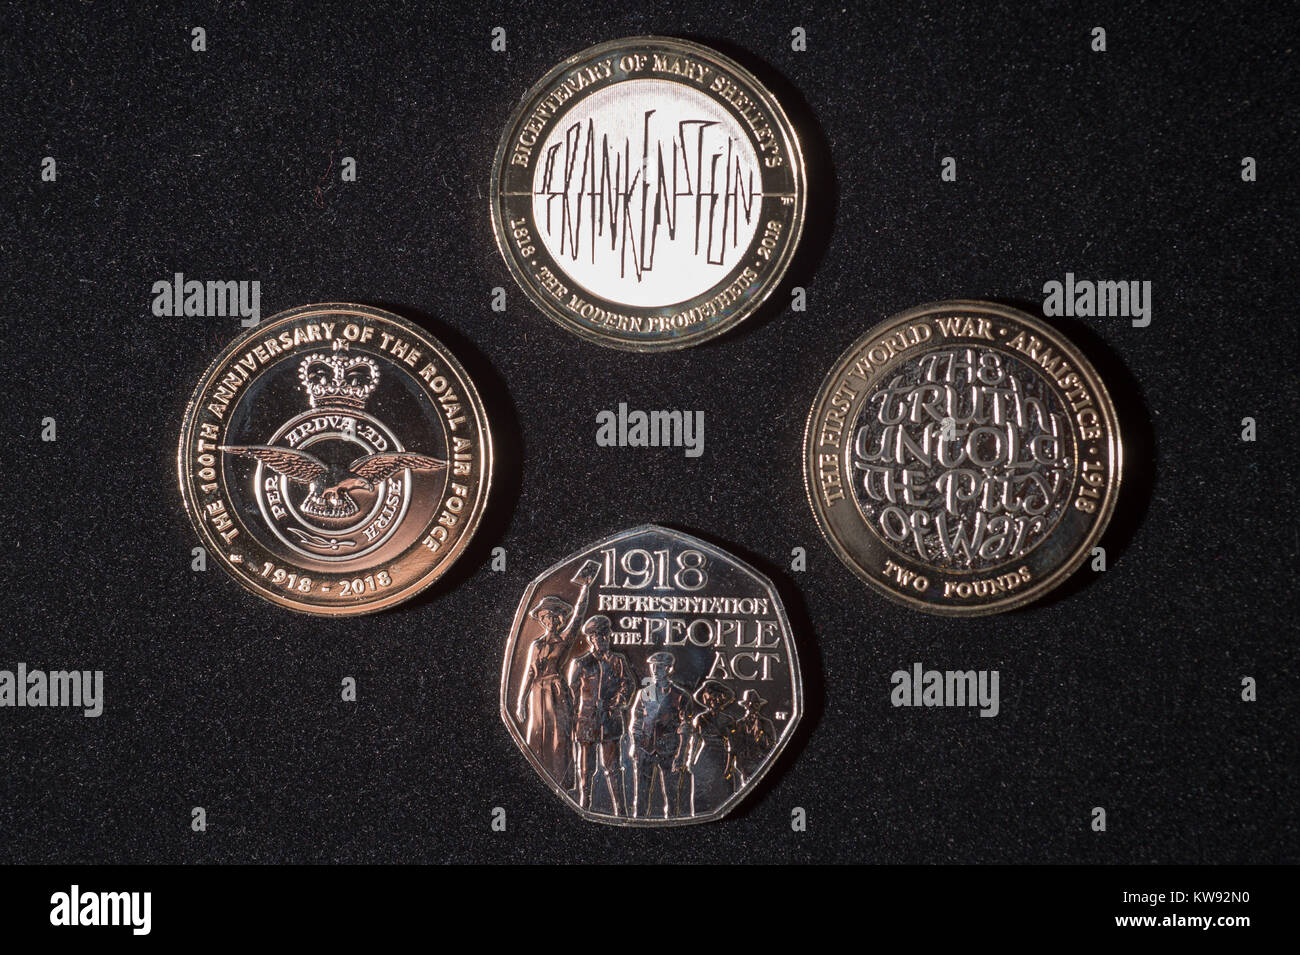 EMBARGOED TO 0001 MONDAY JANUARY 1 Four new circulation coin designs from the Royal Mint featuring a Frankenstein - Stock Image